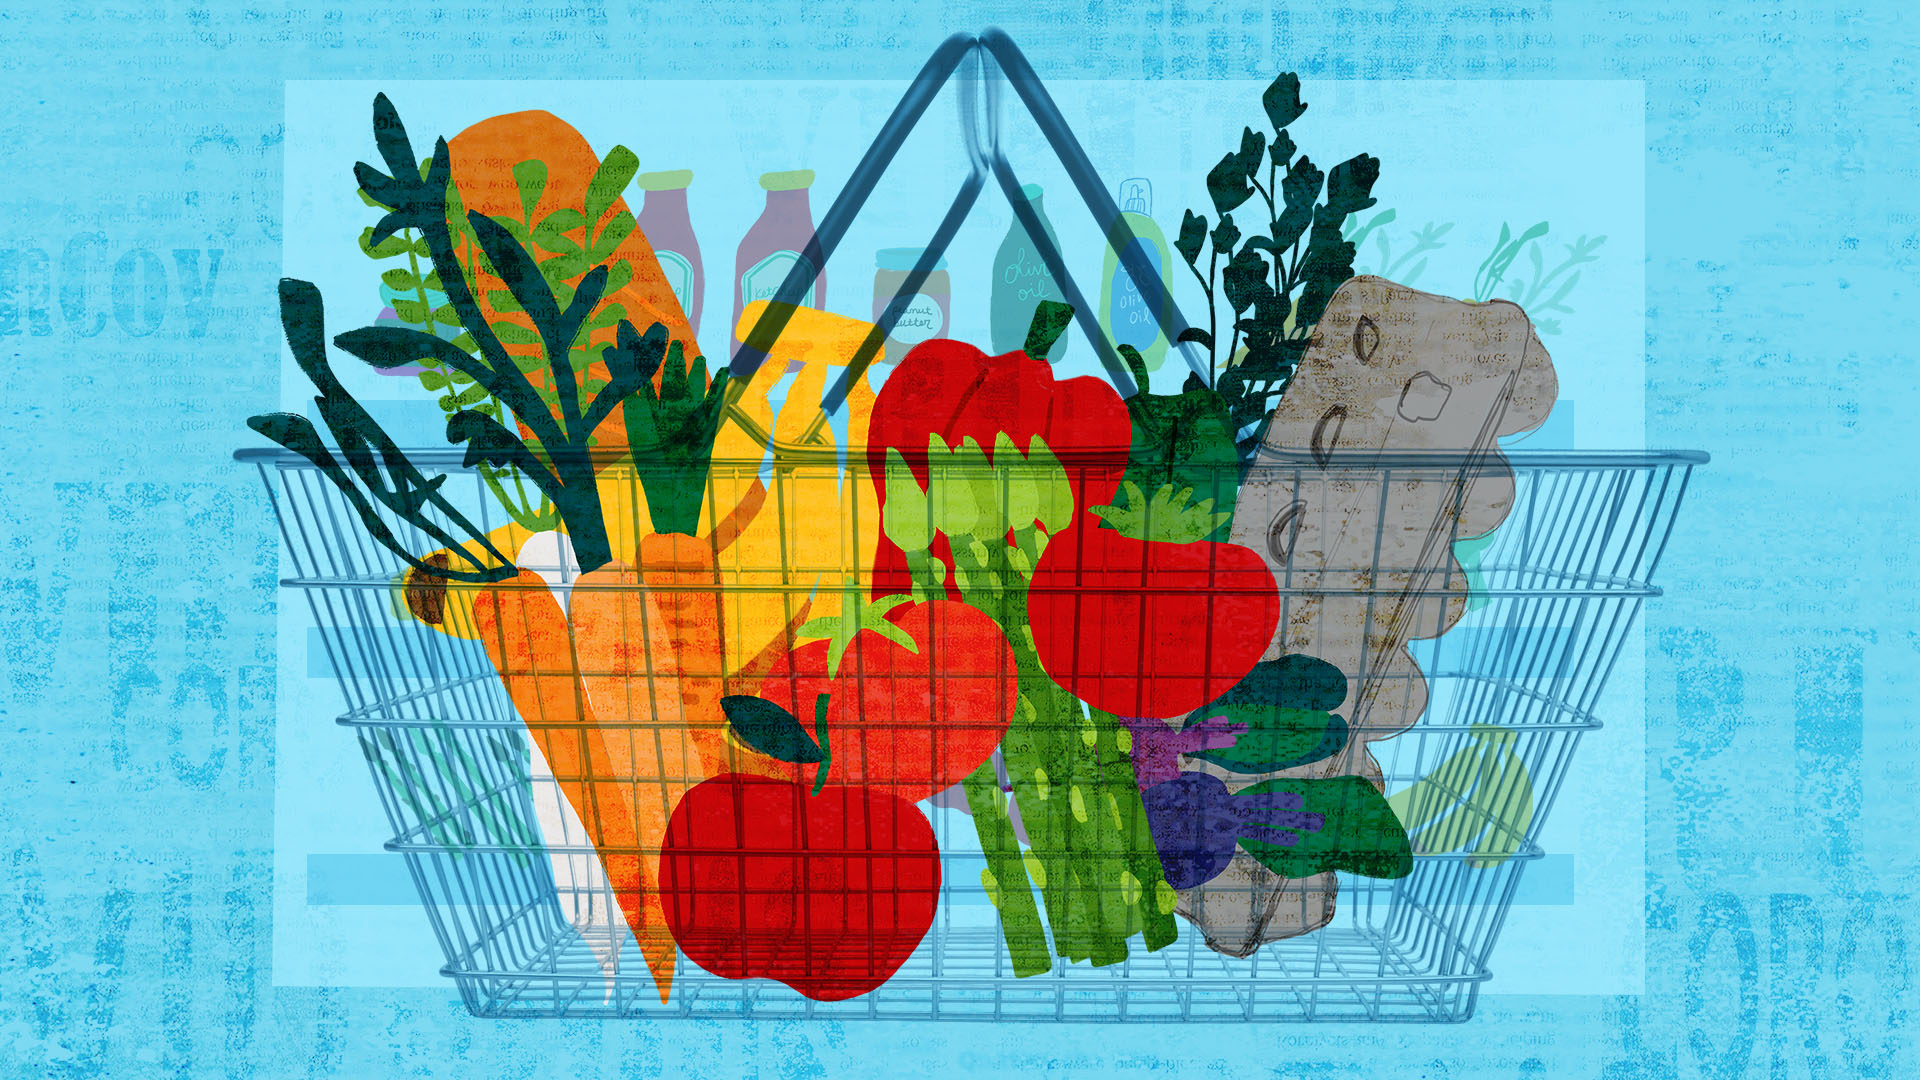 illustration of a grocery basket filled with produce on a blue background